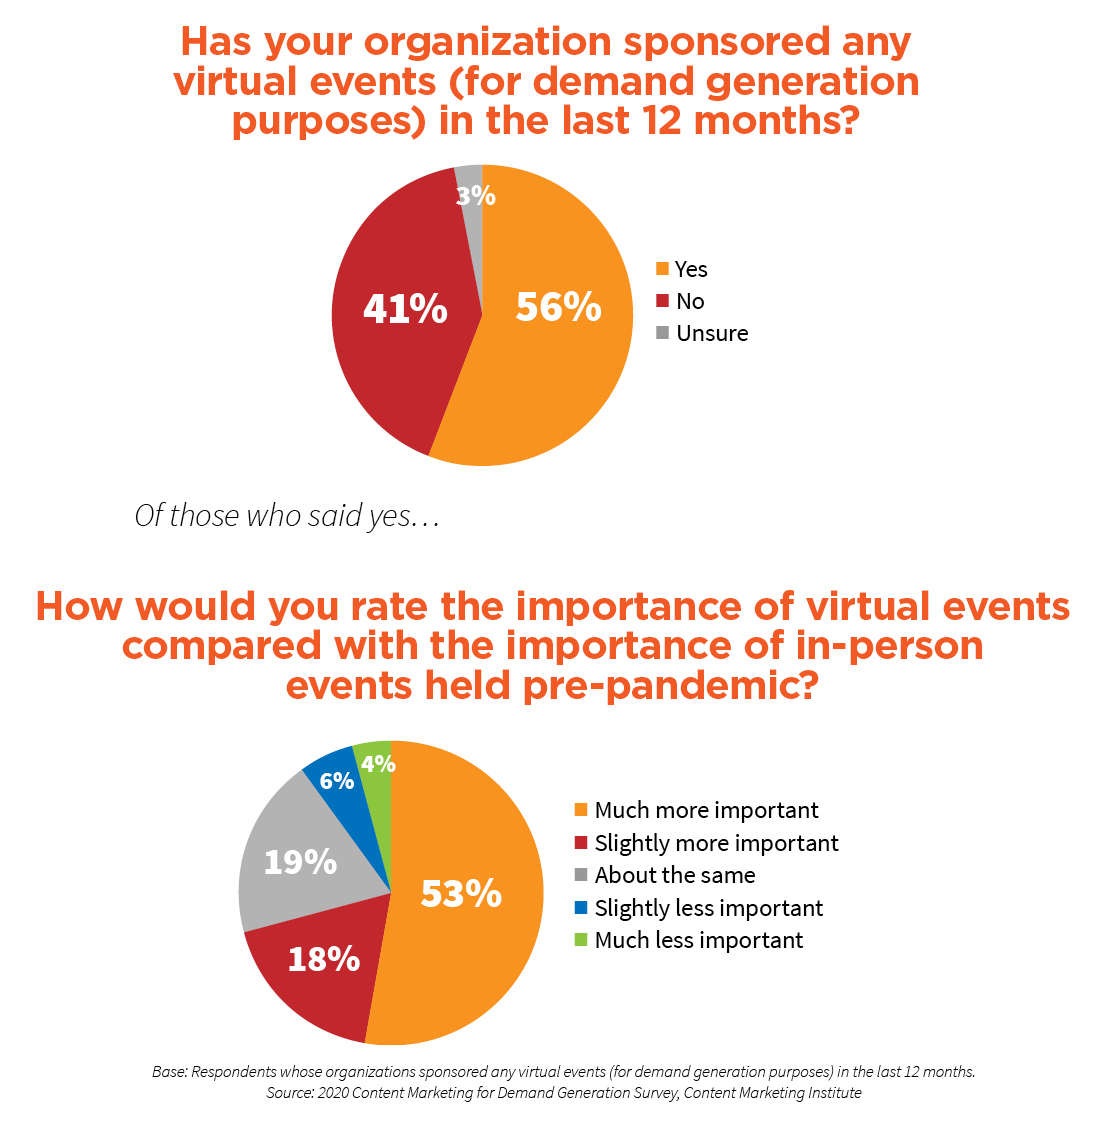 A chart showing that 56 percent used virtual events to generate demand in the last 12 months. 71 percent said those virtual events were either slightly or much more important than pre-pandemic in-person events.